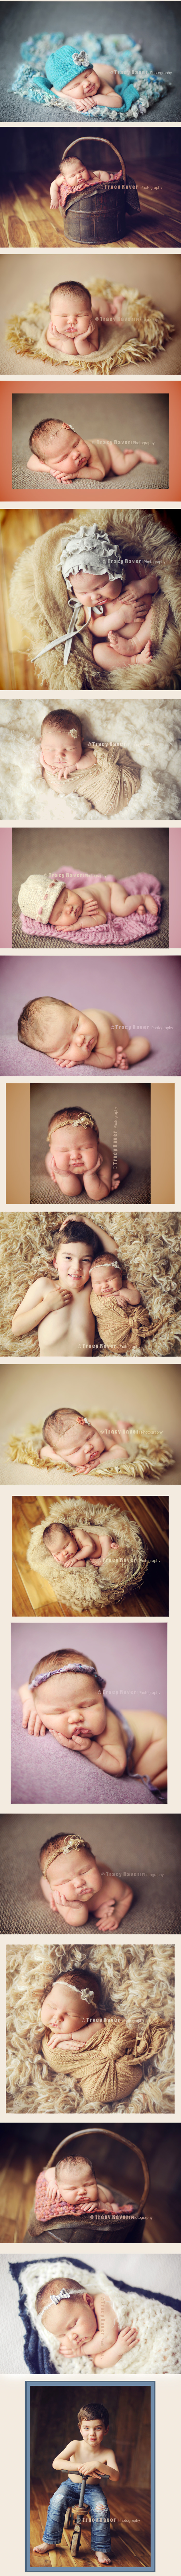 newborn photography, Kelley Ryden and Tracy Raver